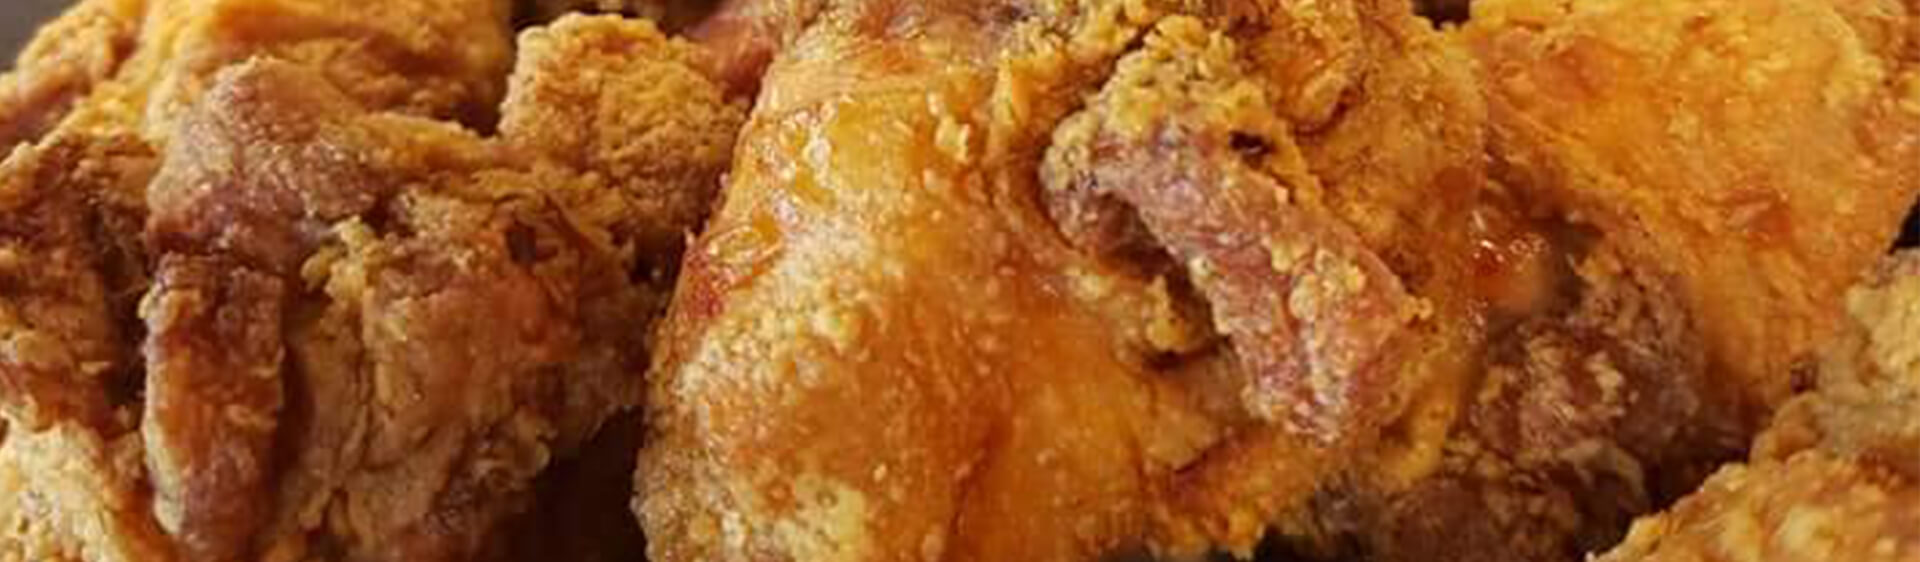 Austin Restaurant Service, Fried Chicken and Soul Food